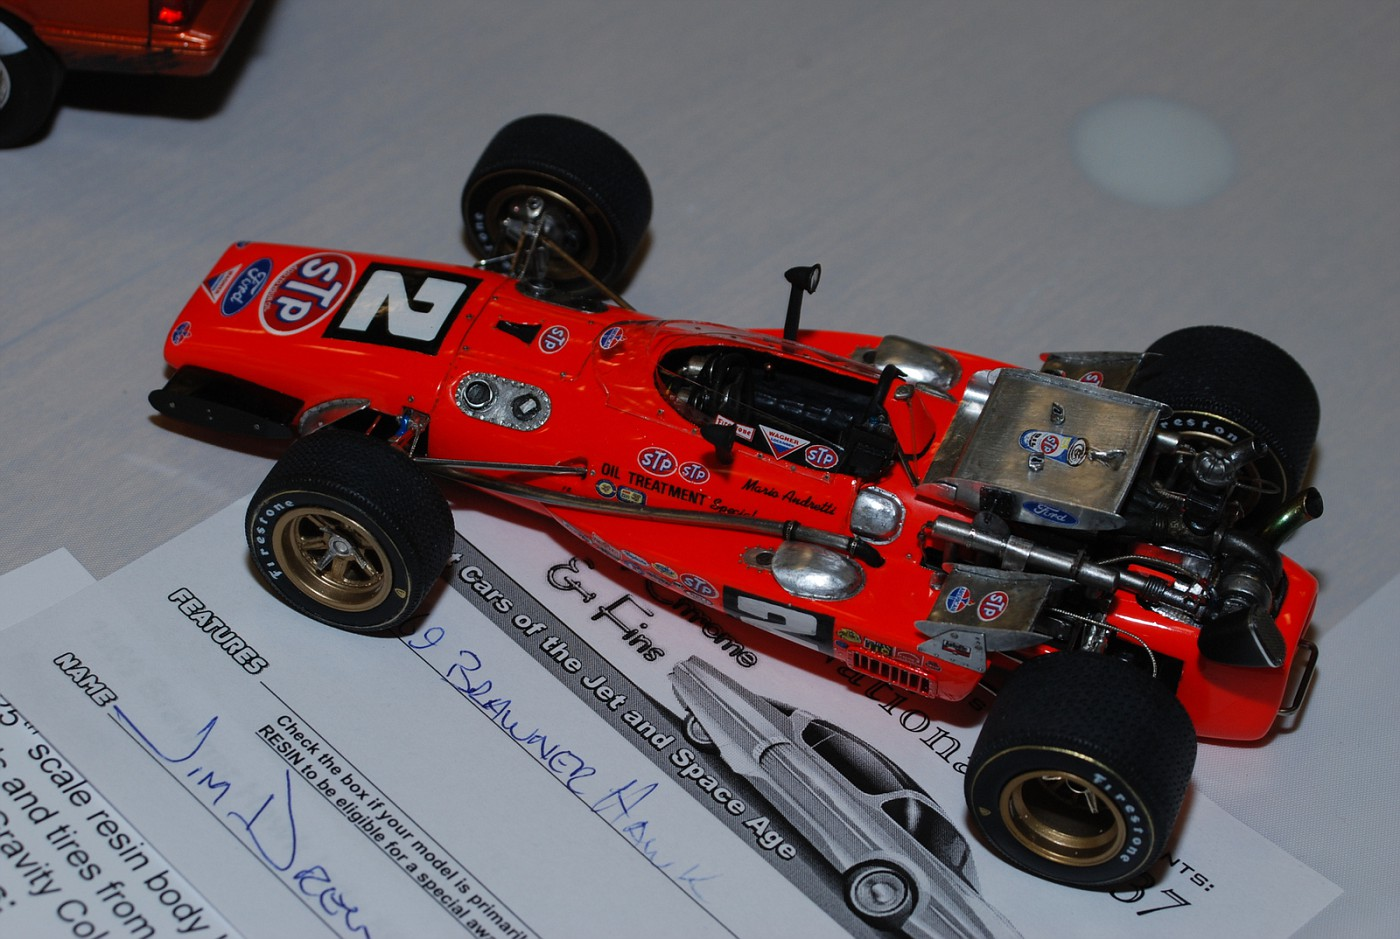 Full Coverage Of The 37th NNL Nationals, With All Builders